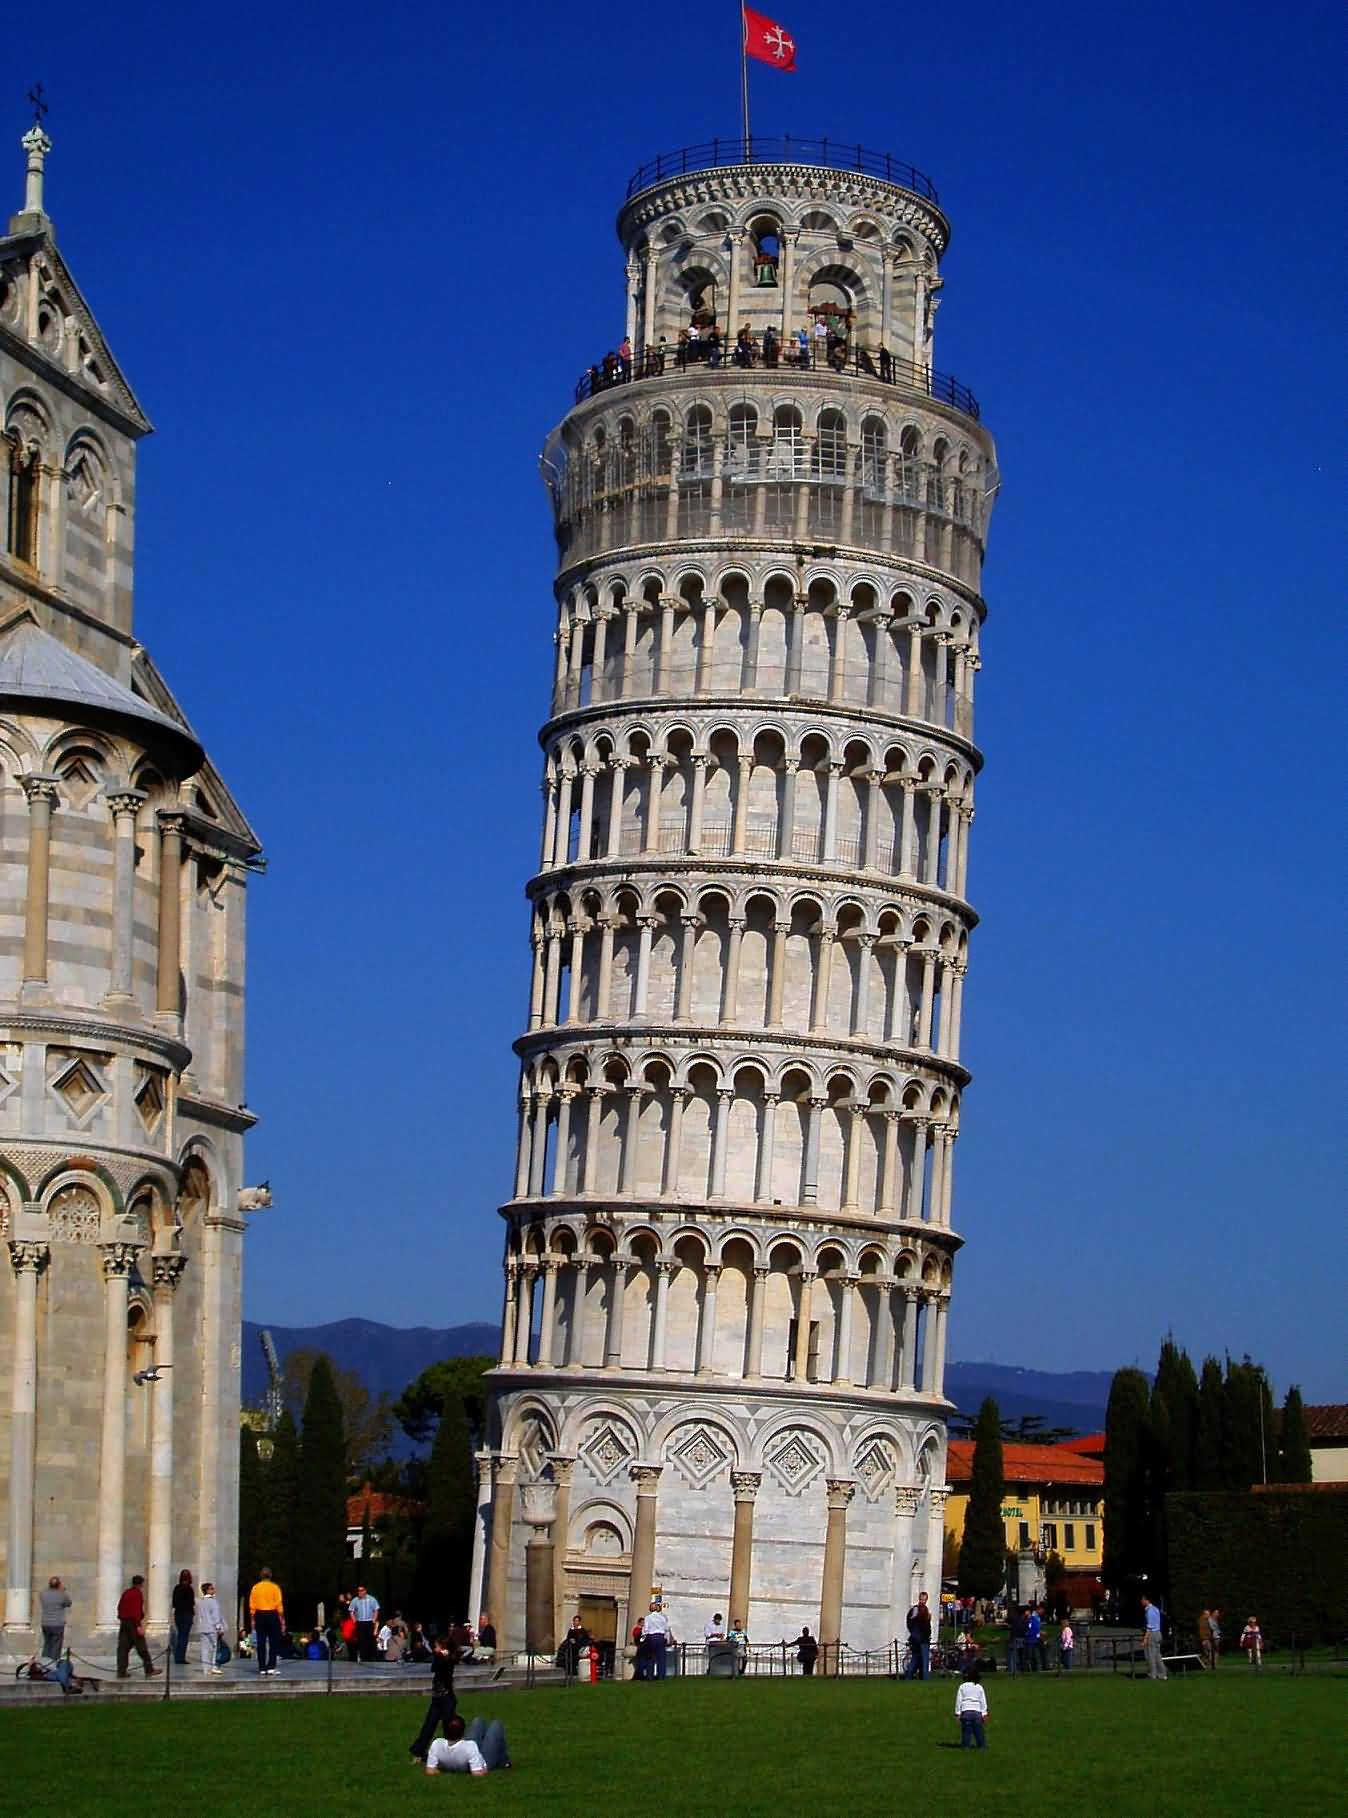 15 incredible inside pictures and photos of the leaning tower of pisa italy - Leaning tower of pisa ...